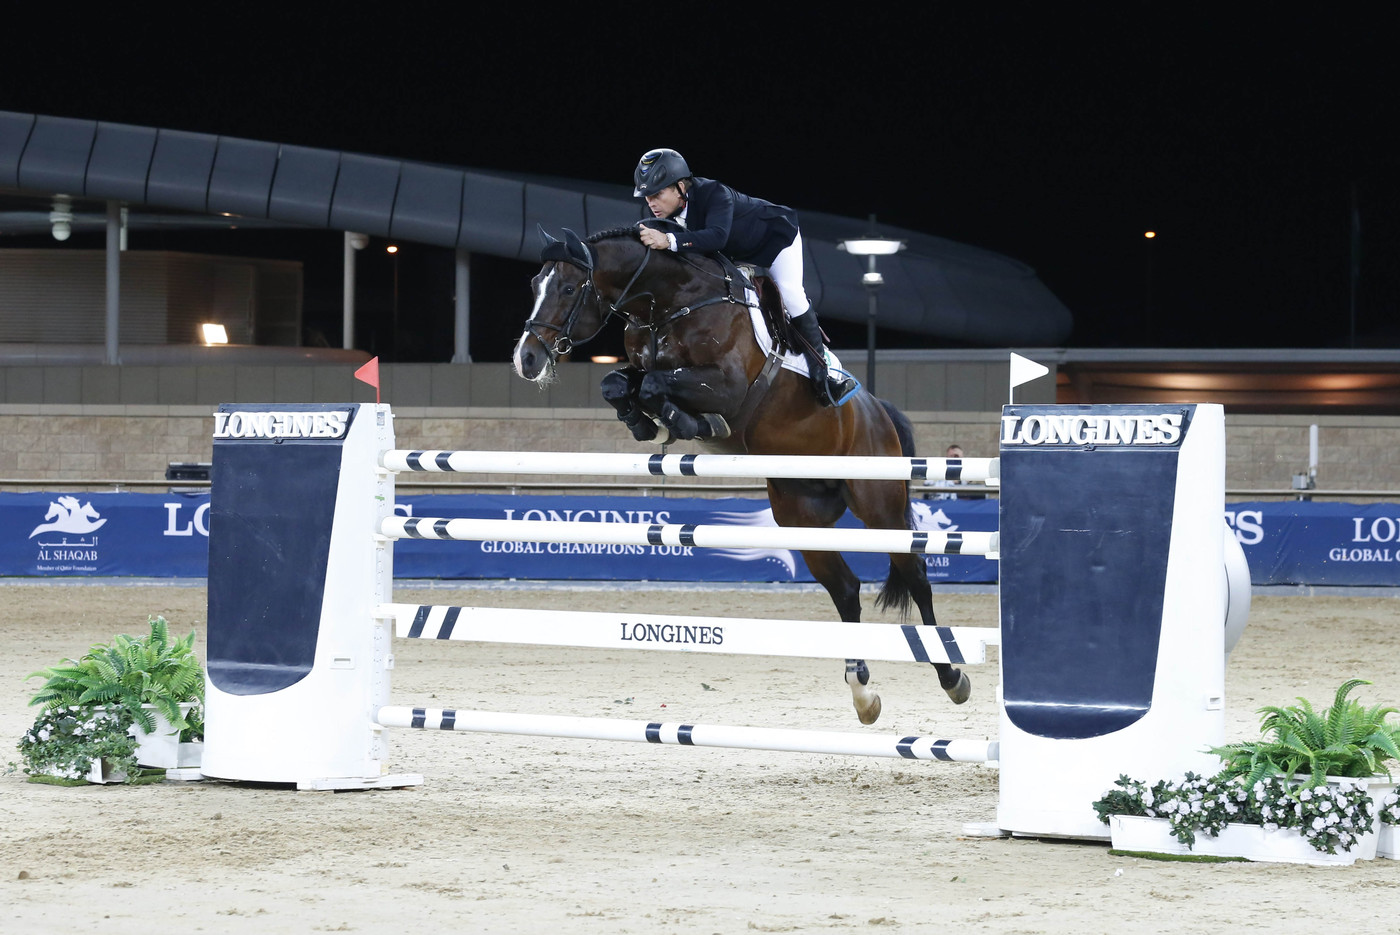 Longines Show Jumping Event: Doha hosts the climax of the Longines Global Champions Tour 2014 5